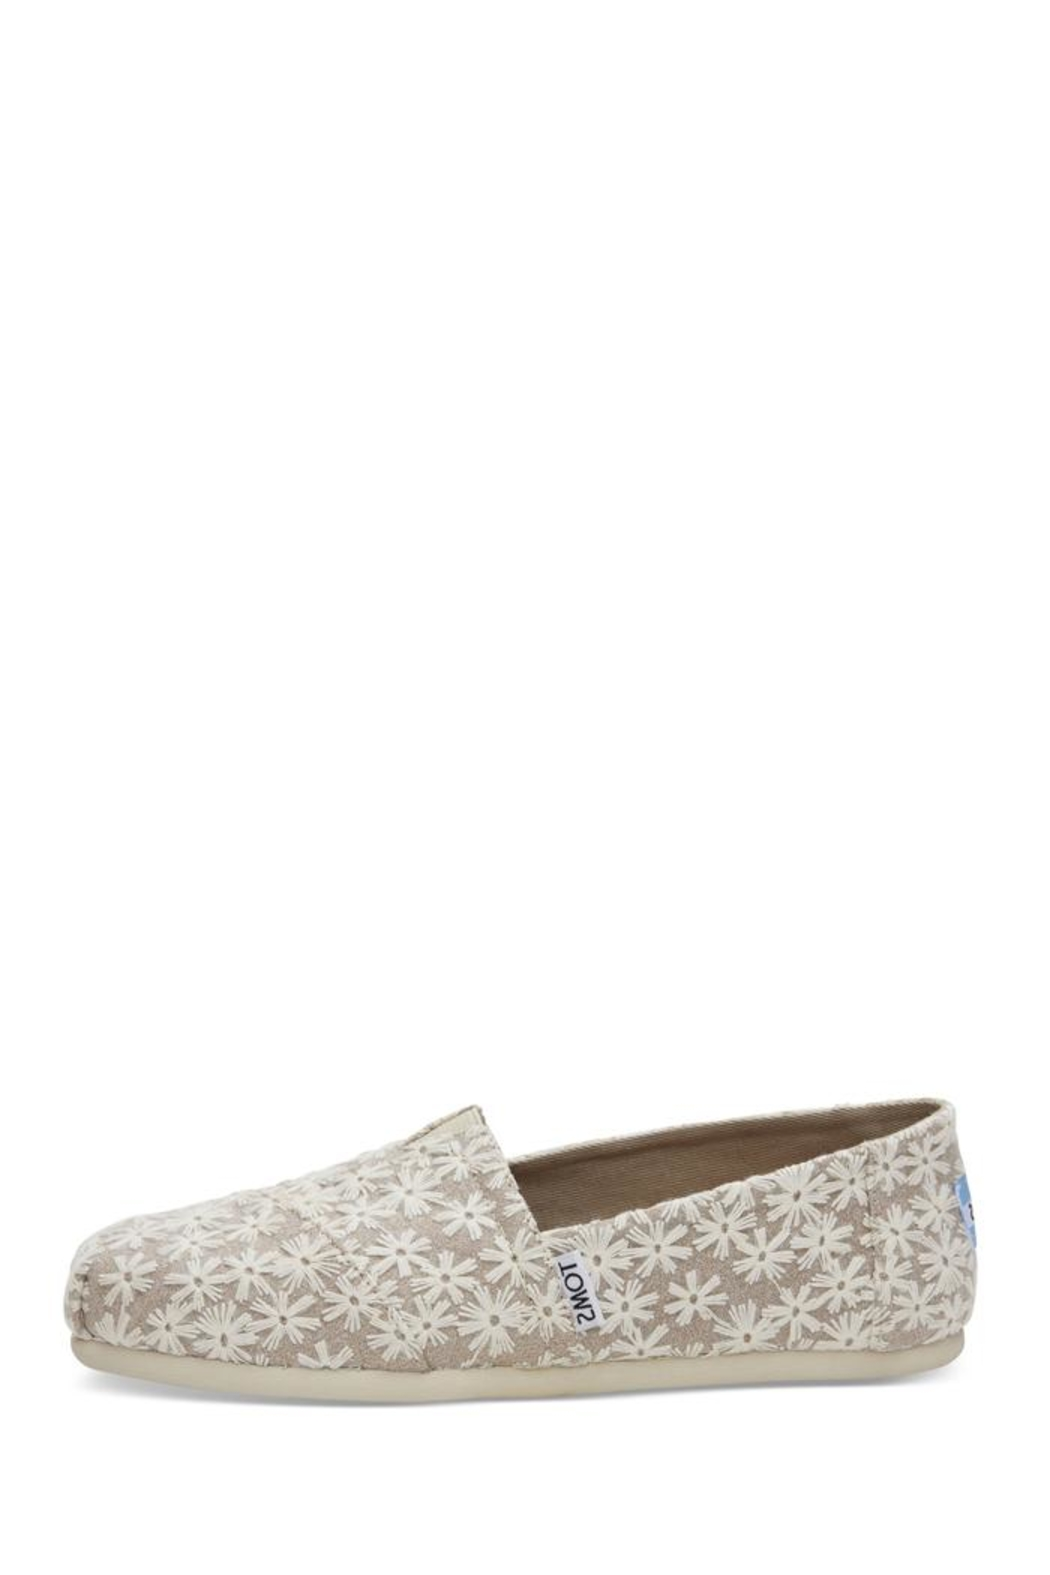 c5036491bbb TOMS Metallic Daisy Slip-On from New York by Luna — Shoptiques